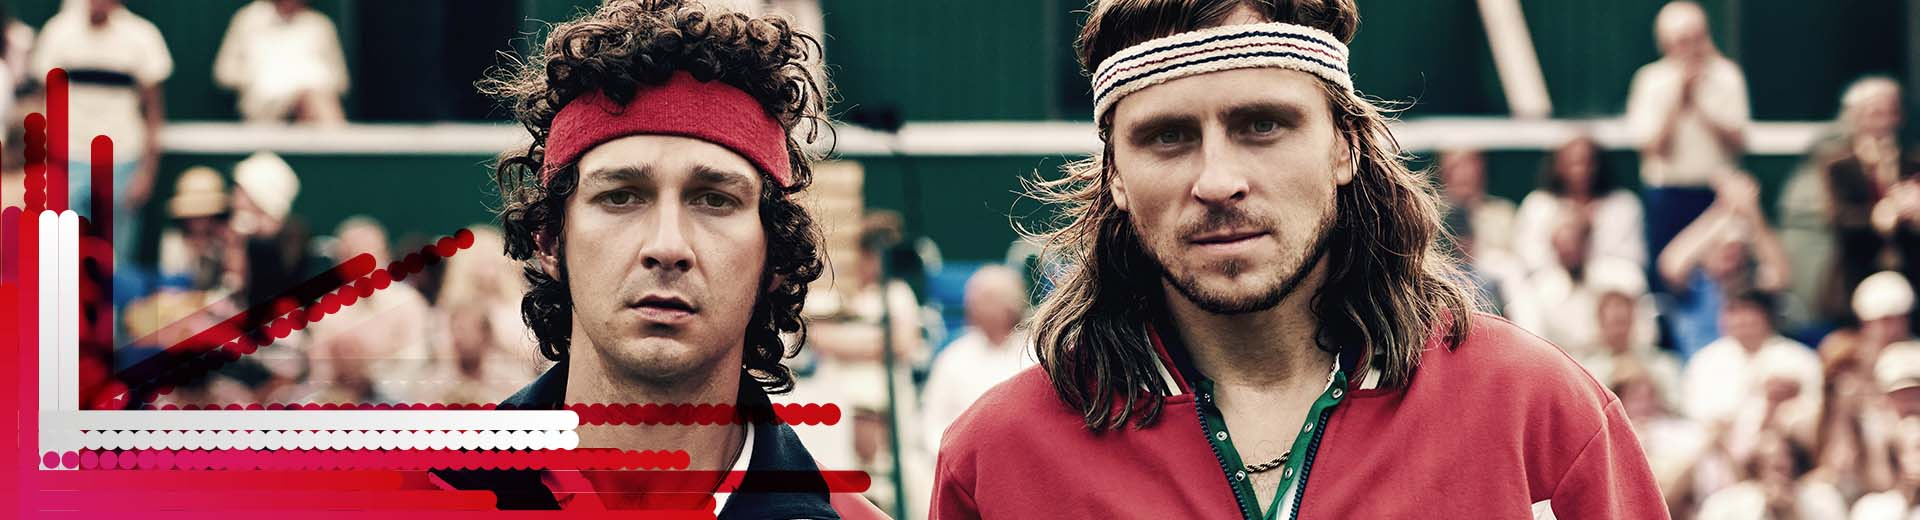 Issue 3 #ACE Magazine - Borg v McEnroe